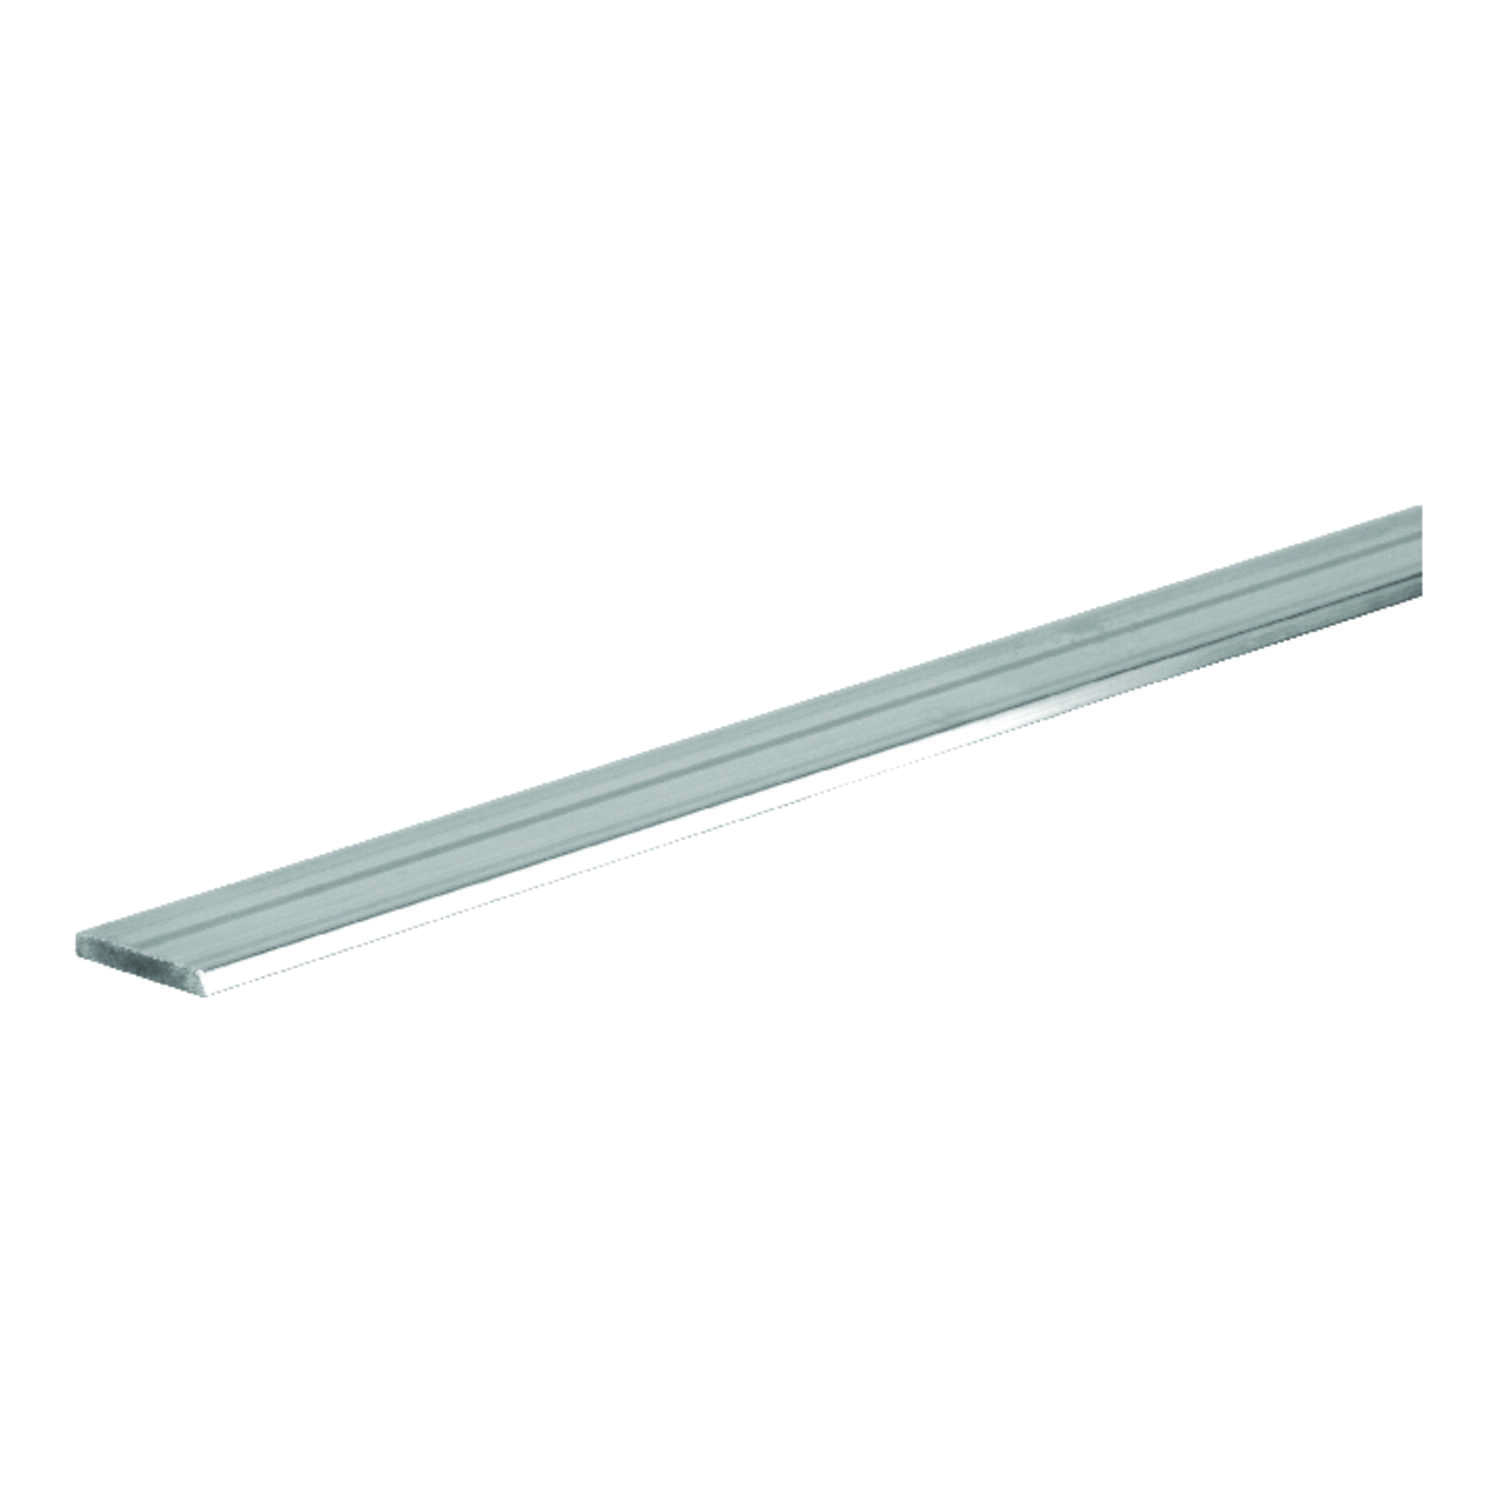 Boltmaster  0.0625 in.  x 1.25 in. W x 3 ft. L Weldable Aluminum Flat Bar  5 pk